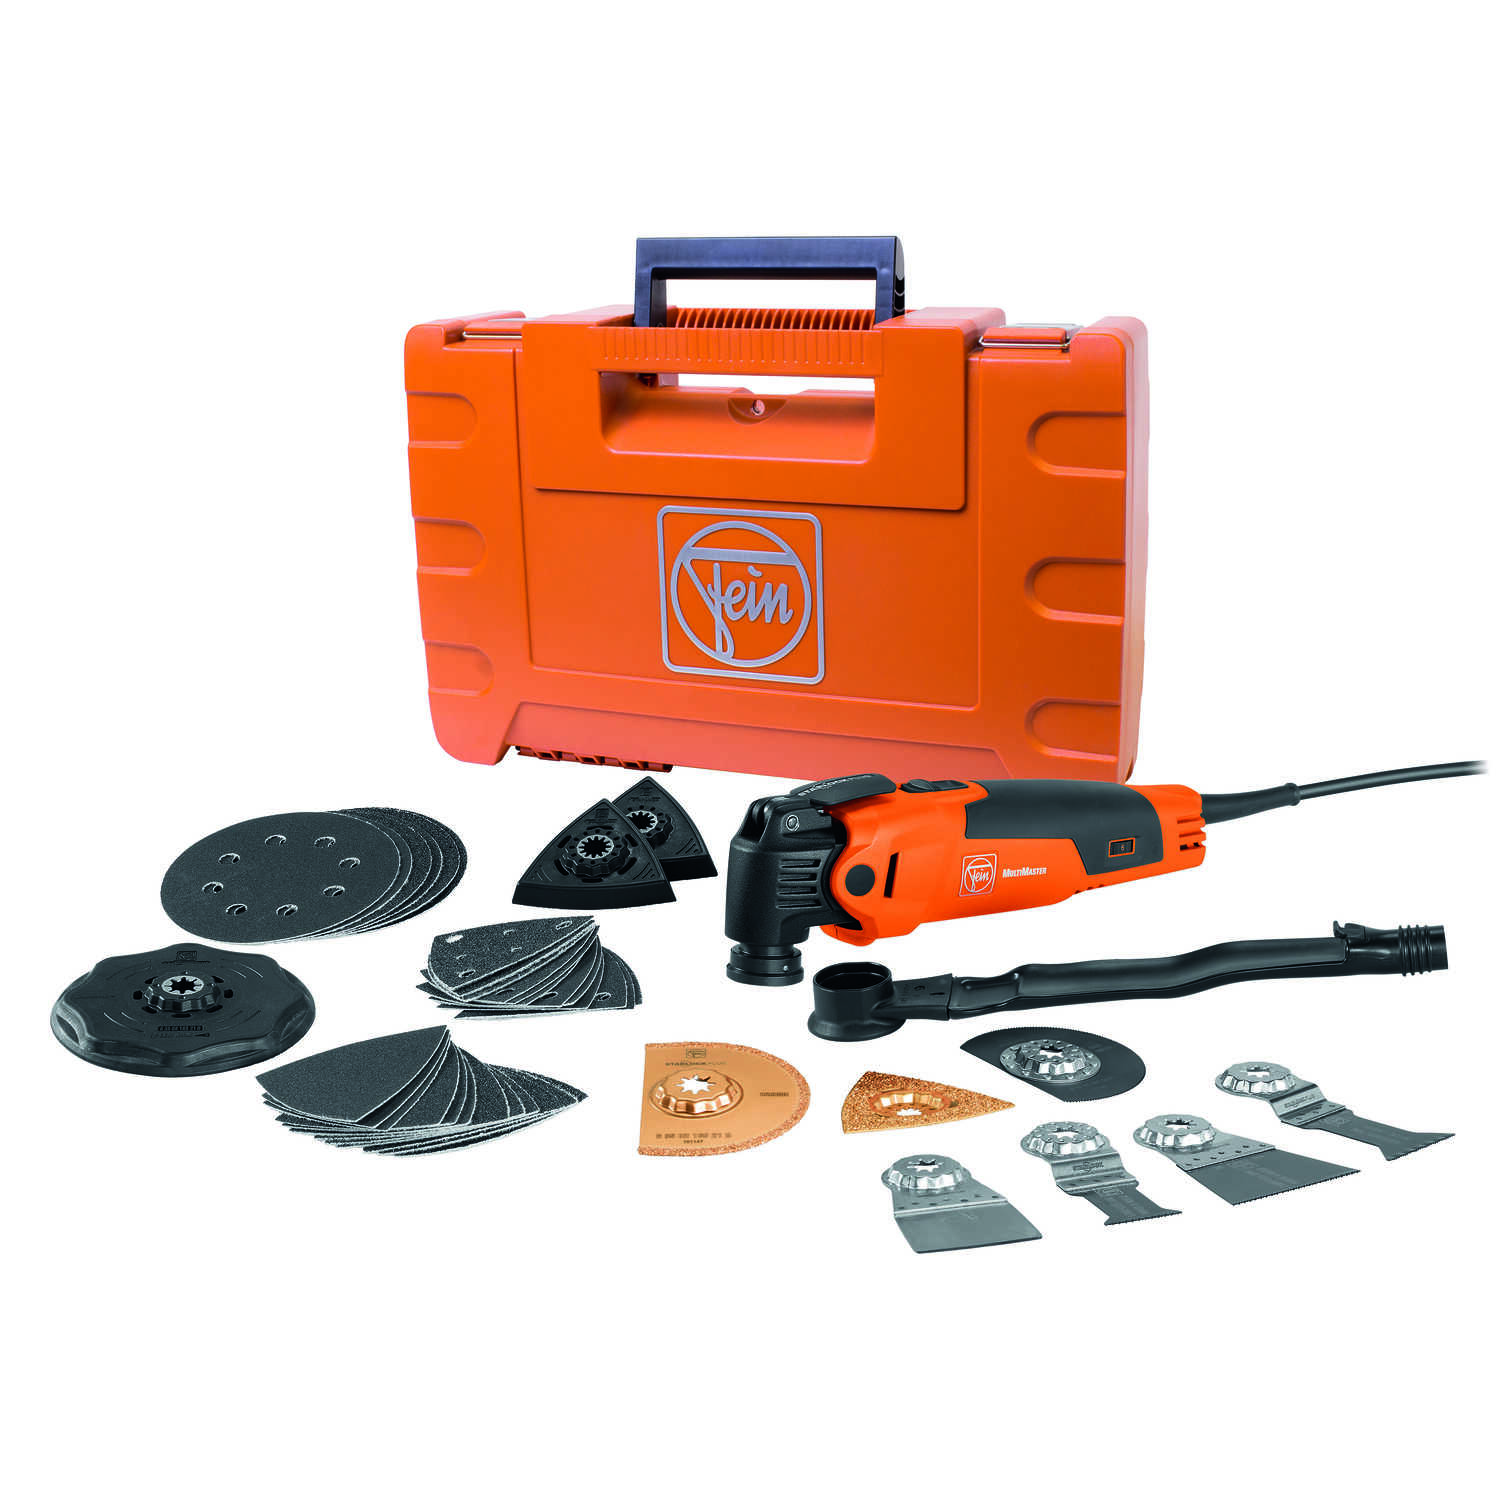 Fein  MultiMaster  3 amps 110 volt Corded  Oscillating Multi-Tool  19500 opm Orange  1 pc. Kit